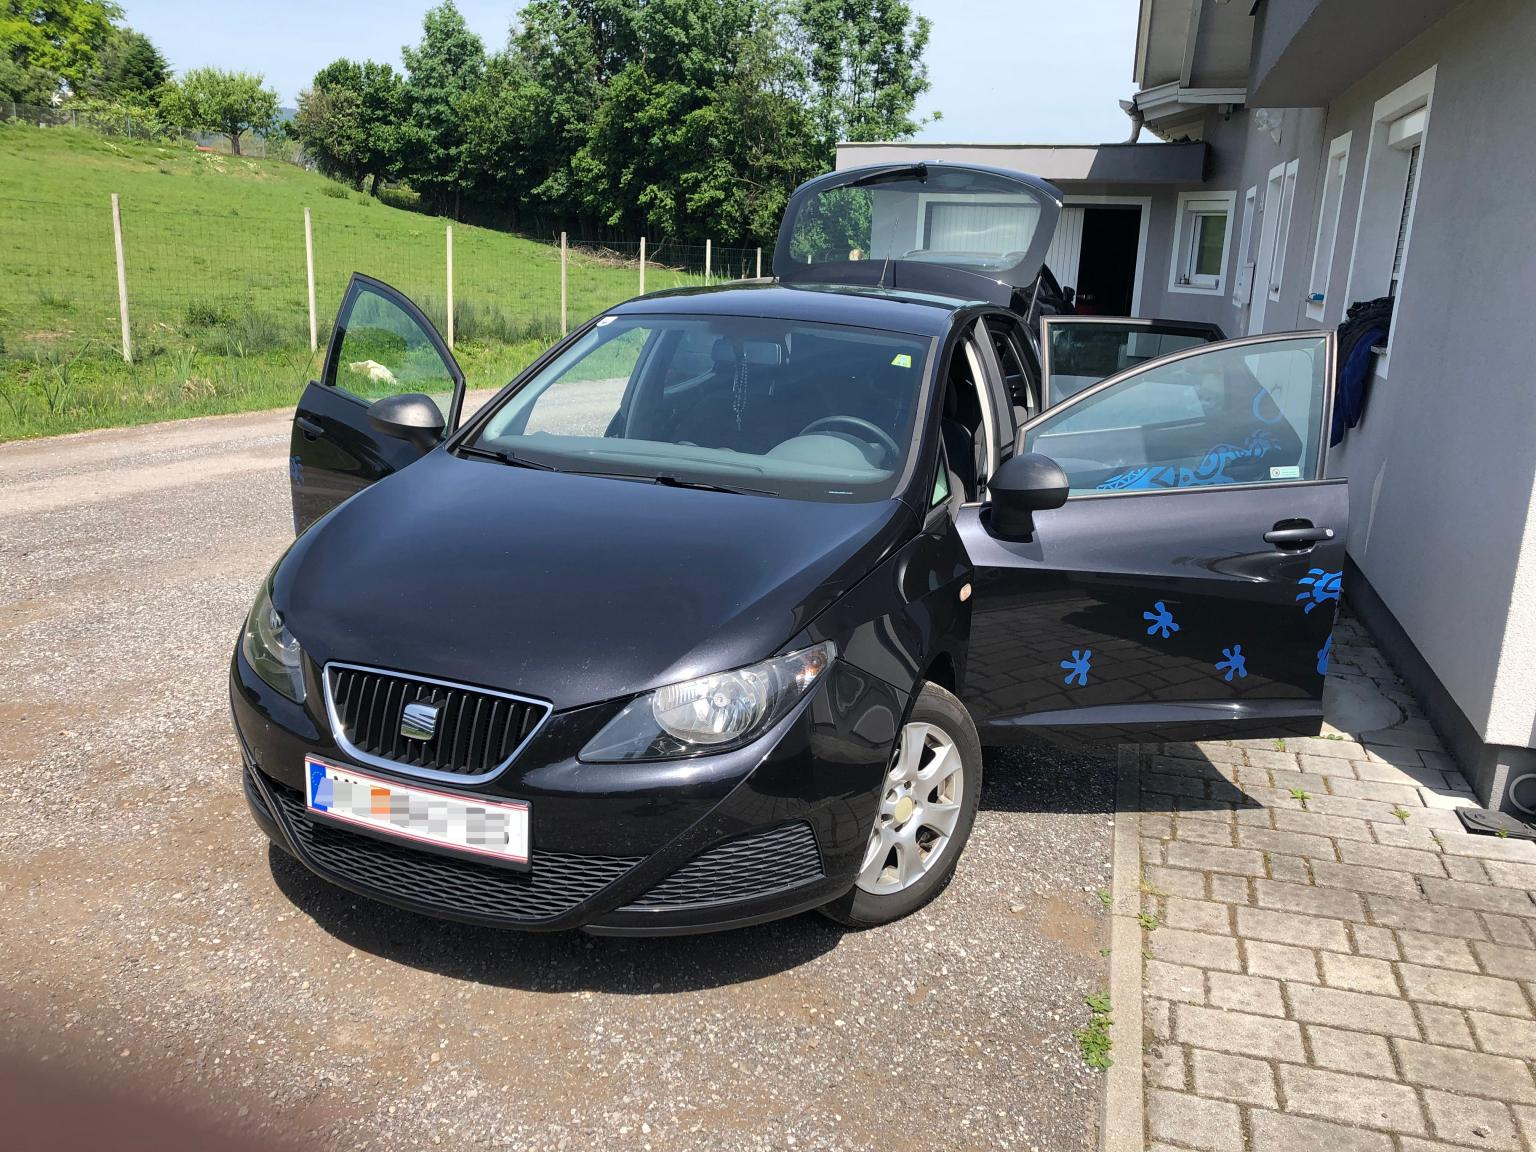 verkaufe seat ibiza 6j in 9220 velden am w rther see for 3 for sale shpock. Black Bedroom Furniture Sets. Home Design Ideas